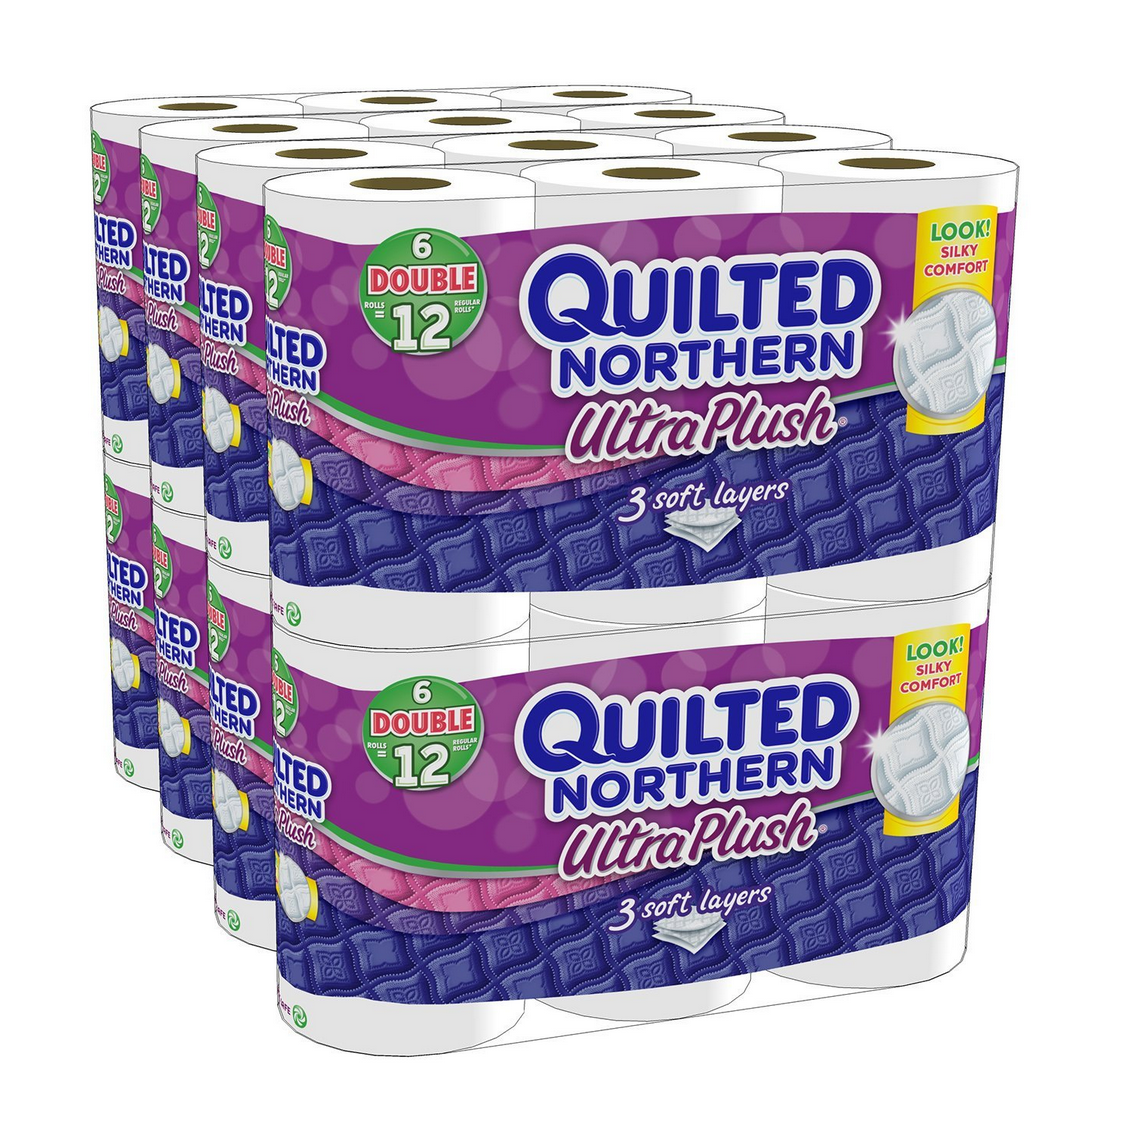 HOT! Big Deal on Quilted Northern Ultra Plush Bath Tissue (#1 Best Seller!)